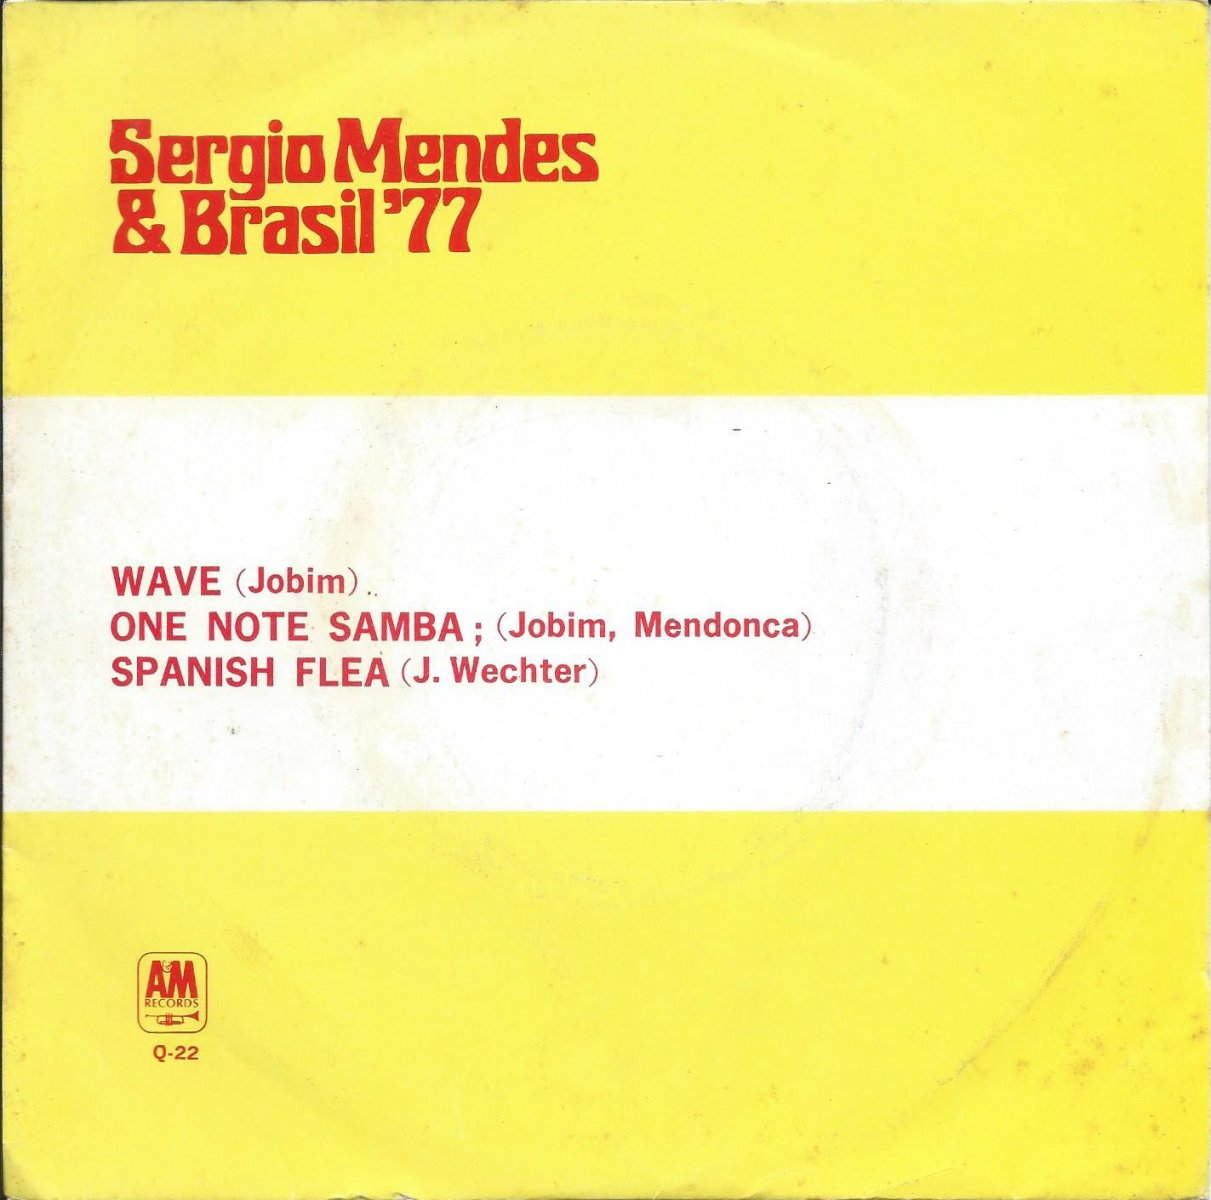 セルジオ・メンデスとブラジル'77 SERGIO MENDES & BRASIL '77 / WAVE / ONE NOTE SAMBA / SPANISH FLEA (7